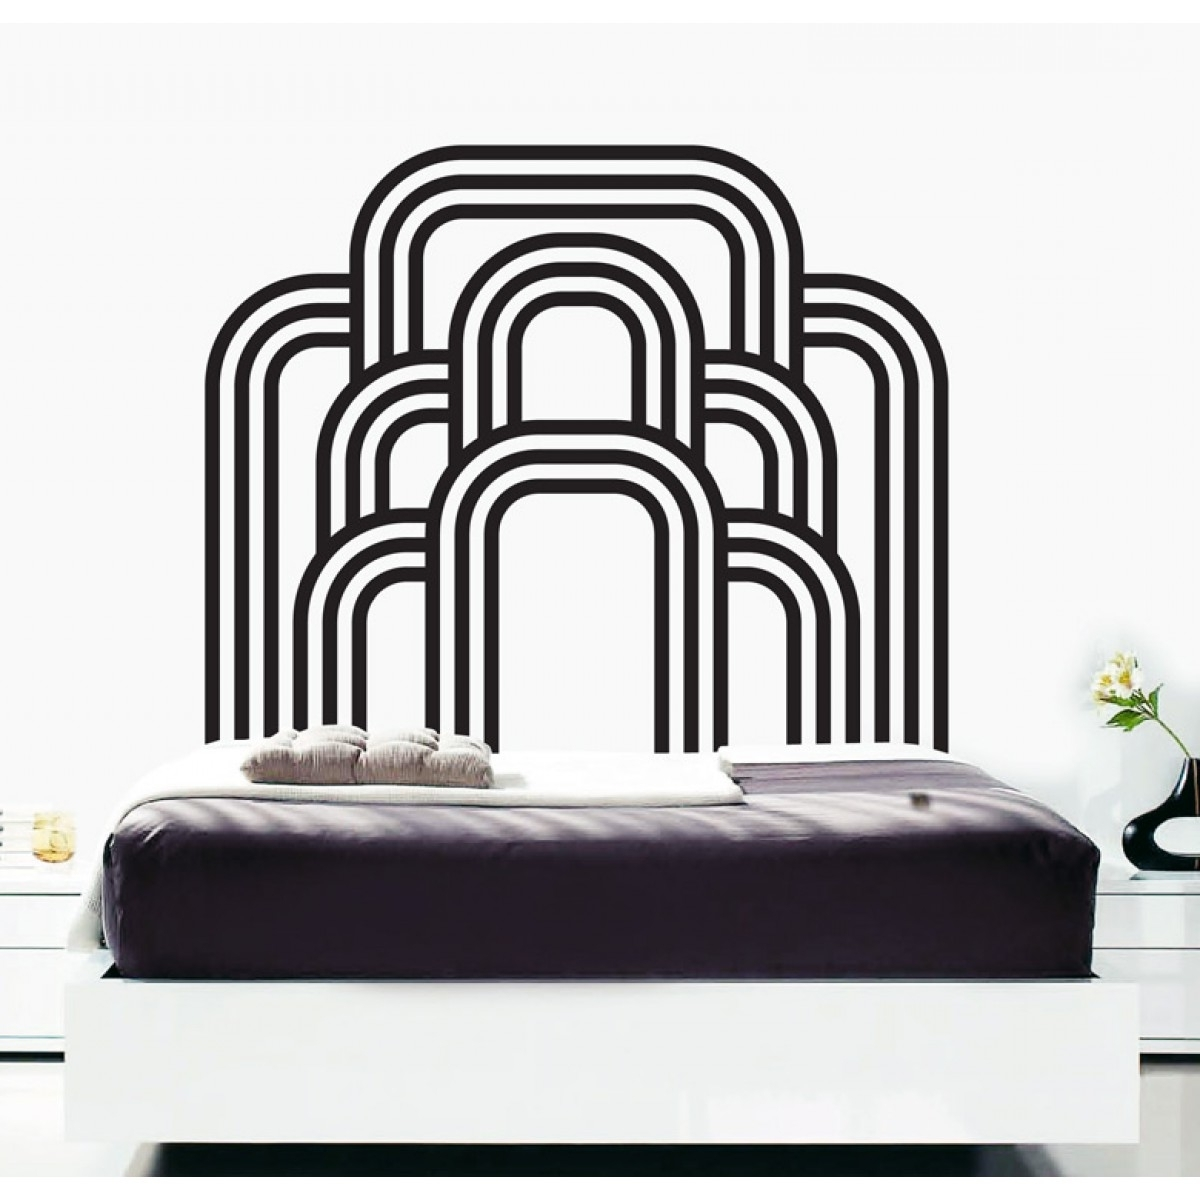 Bedroom Art Deco Wall Stickers With Art Deco Wall Art (View 6 of 20)